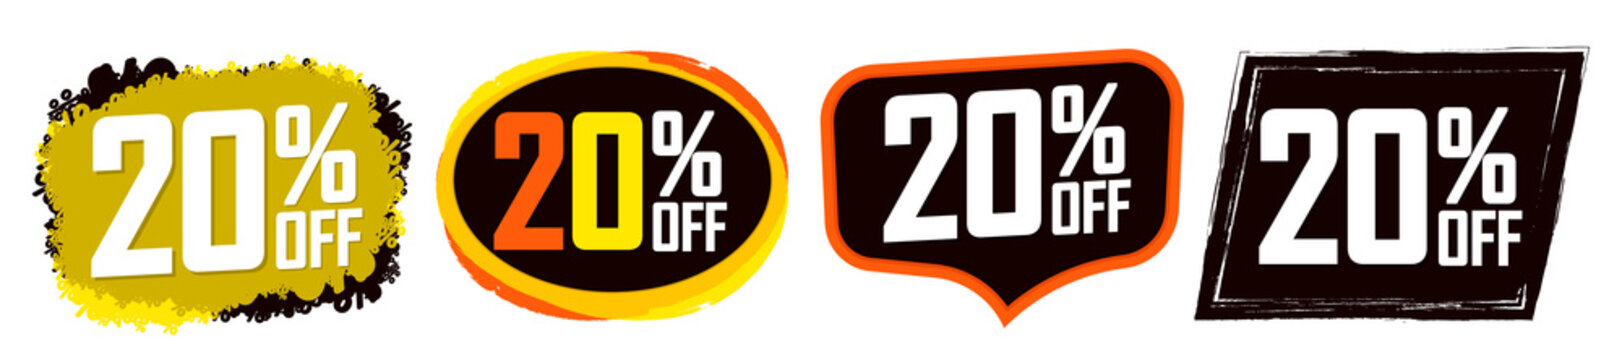 Set Sale 20% off banners, discount tags design template, promo app icons, vector illustration